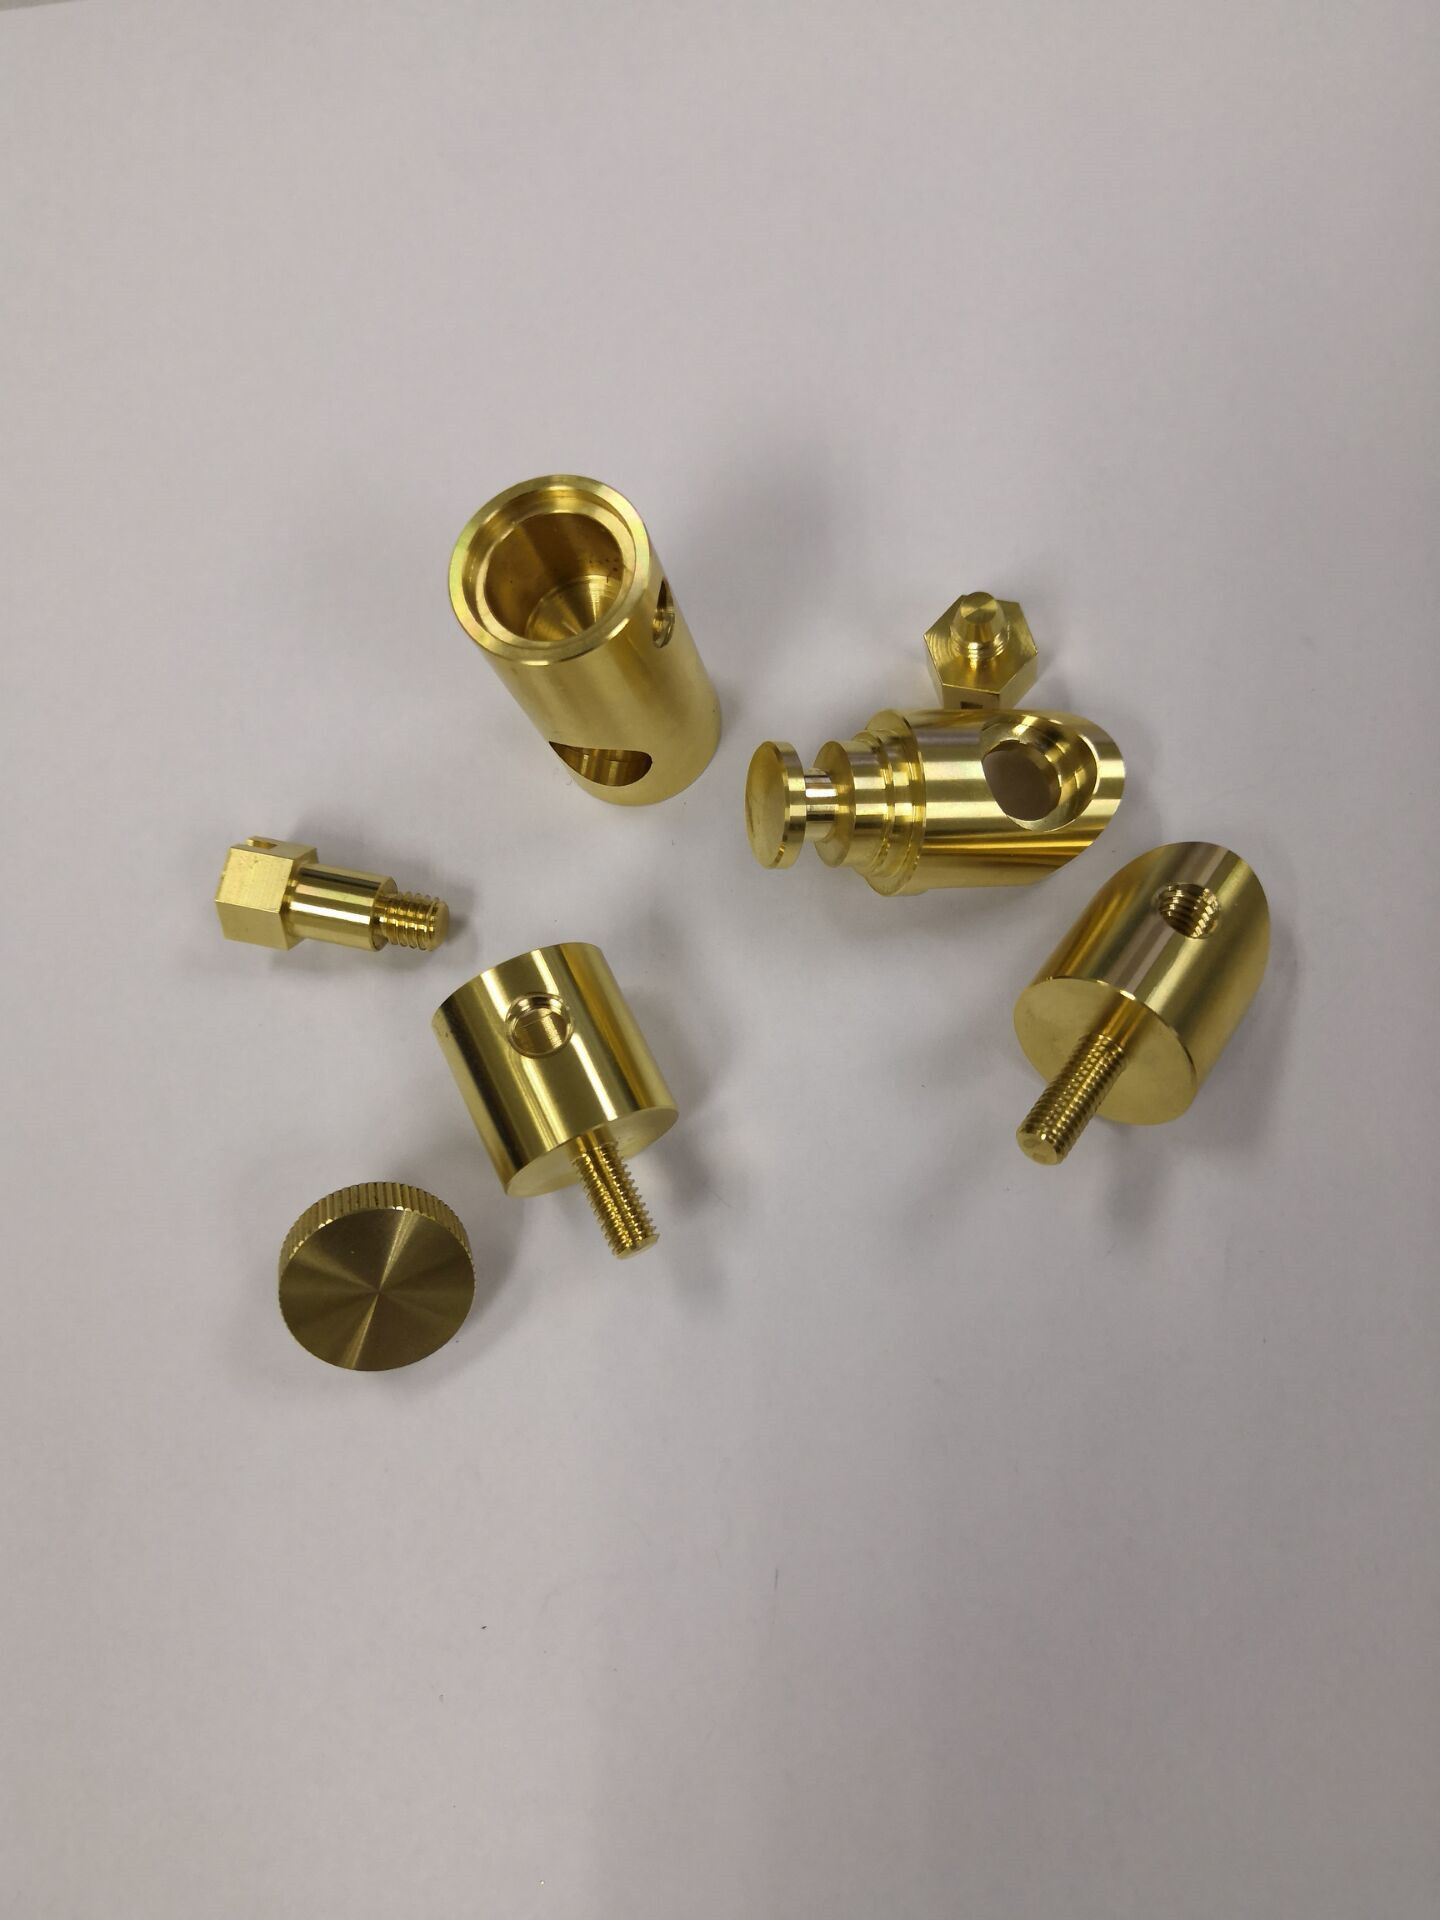 CNC machining we are able to do prototyping and production of small